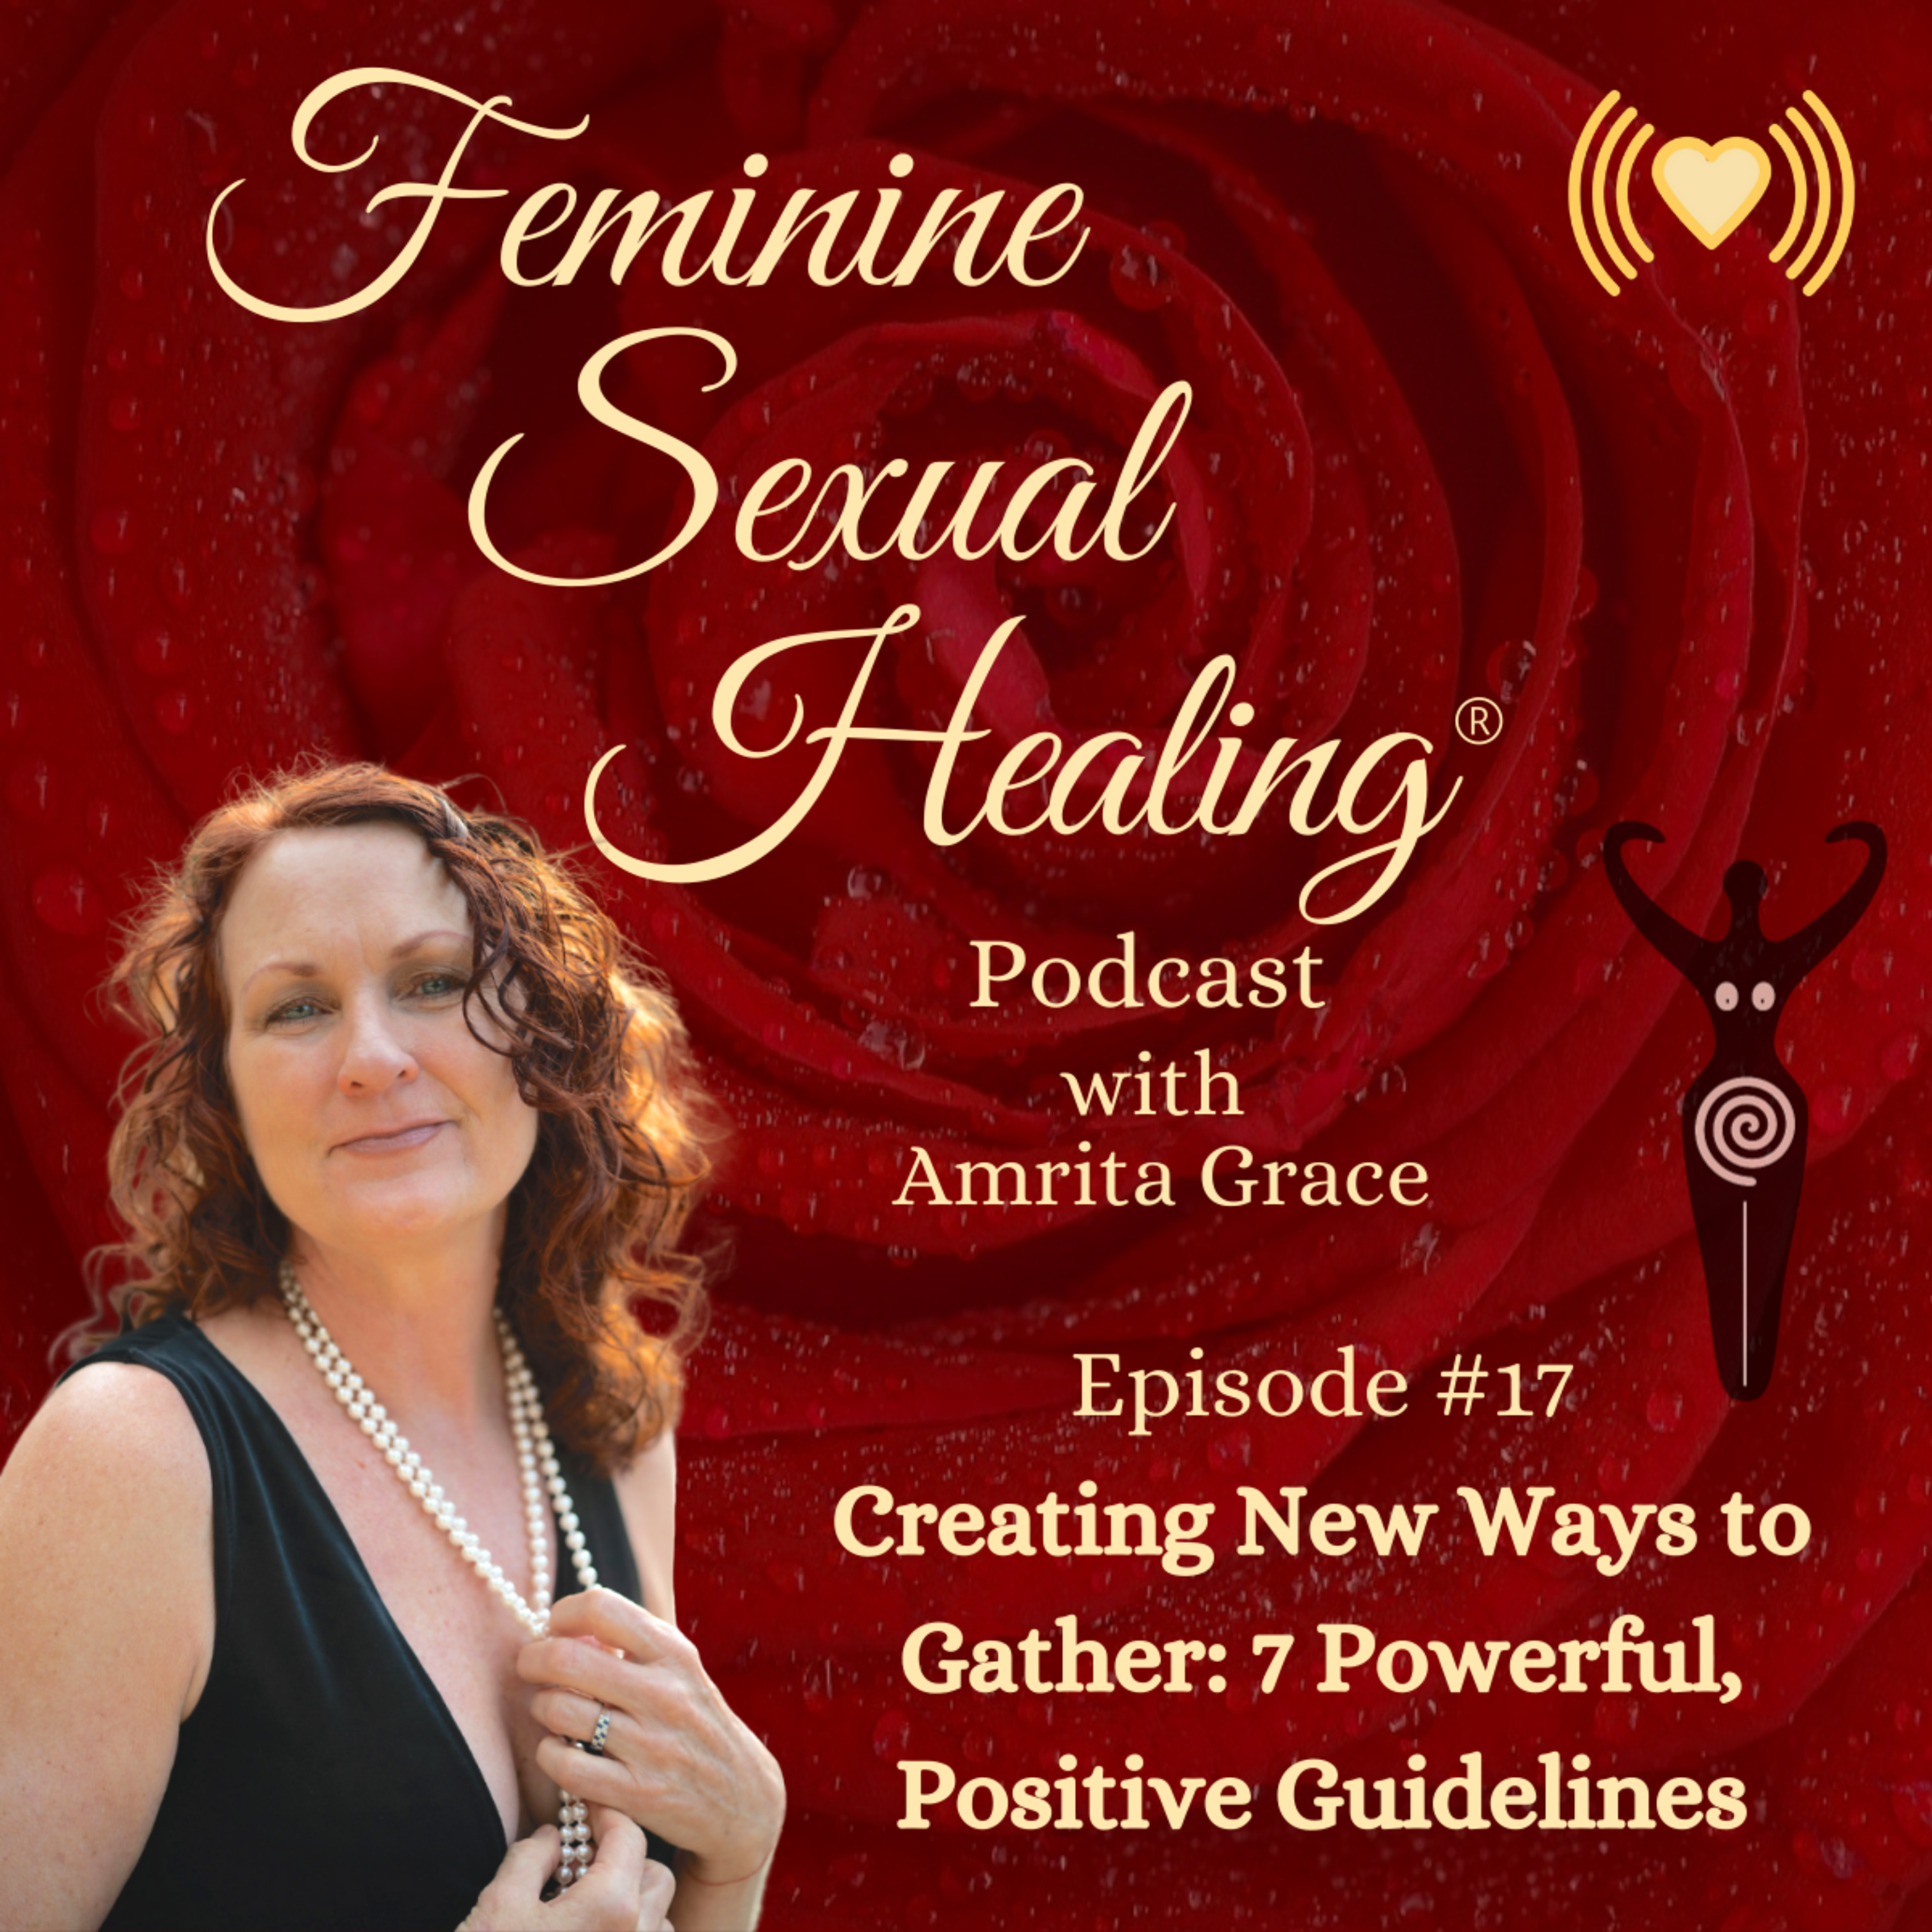 Episode #17 Creating New Ways to Gather: 7 Powerful, Positive Guidelines